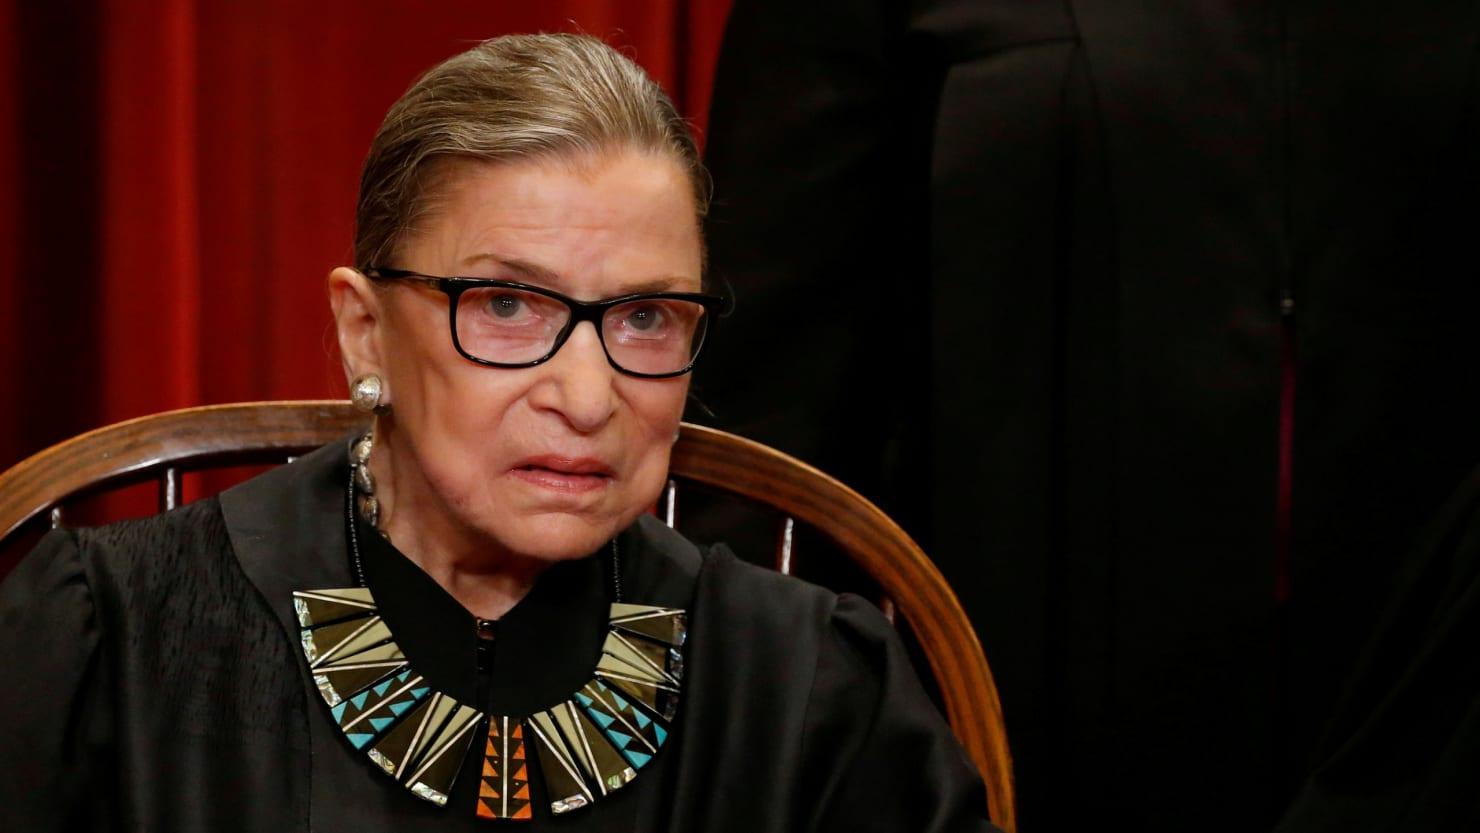 RBG misses Scotus arguments for the first time